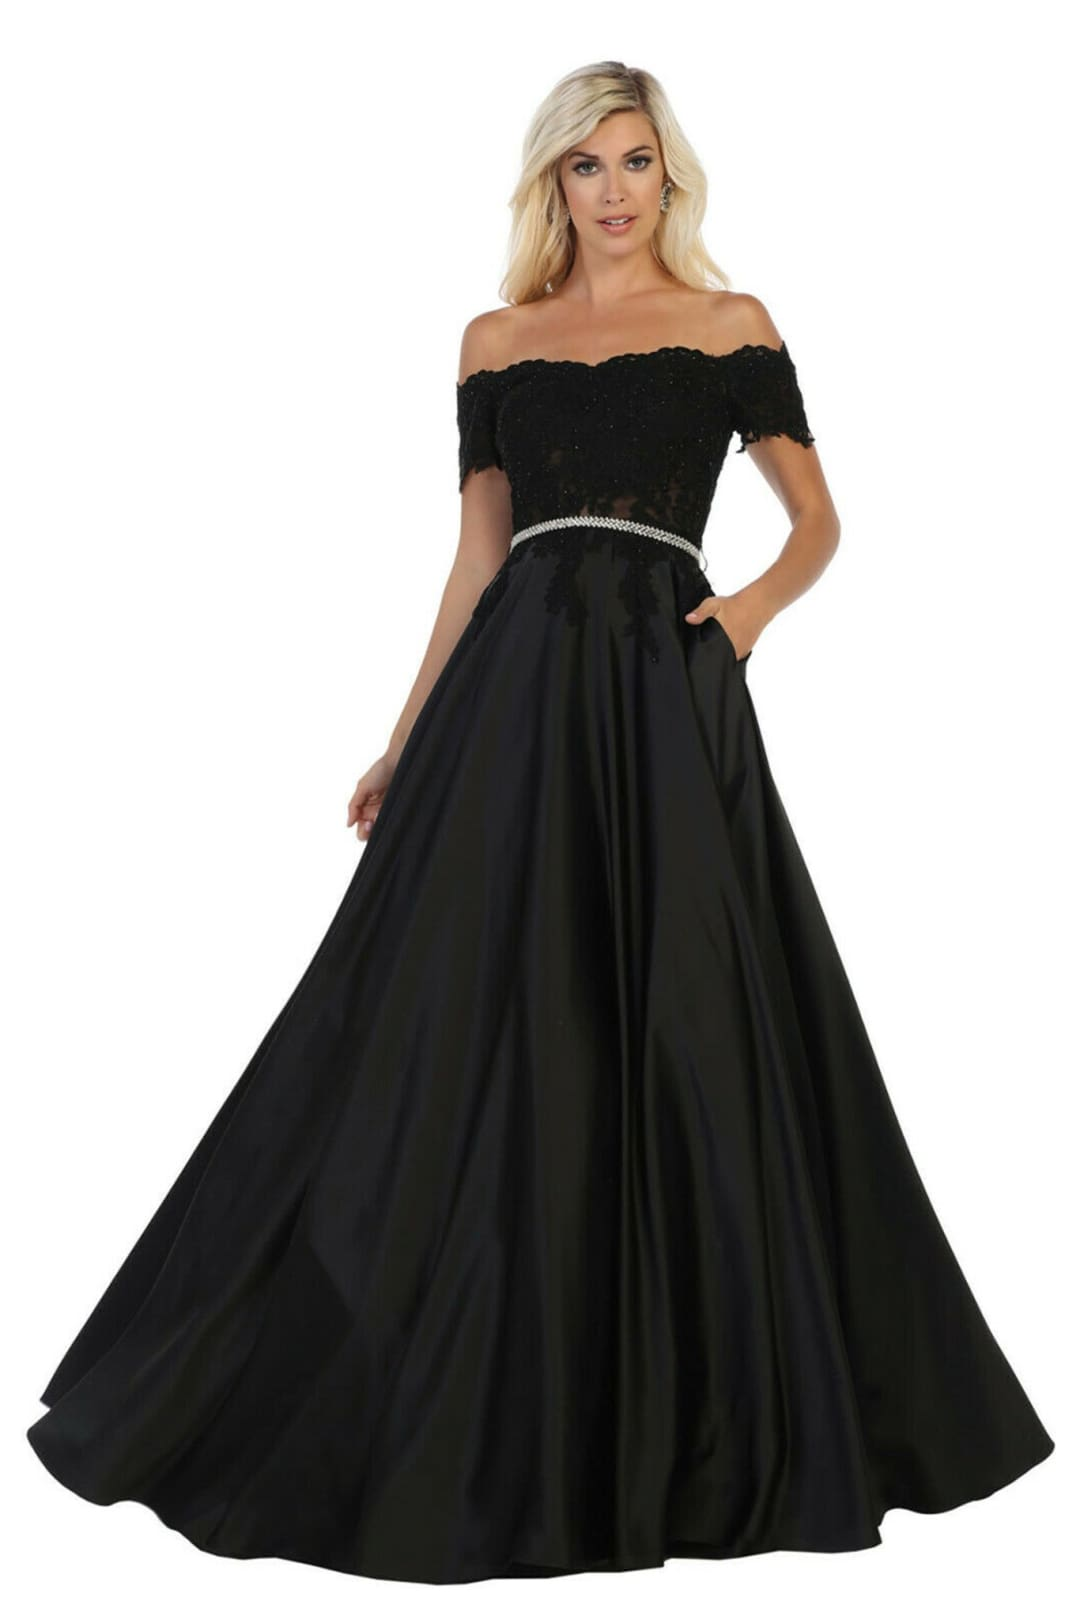 Off Shoulder Evening Gown - Black / 4